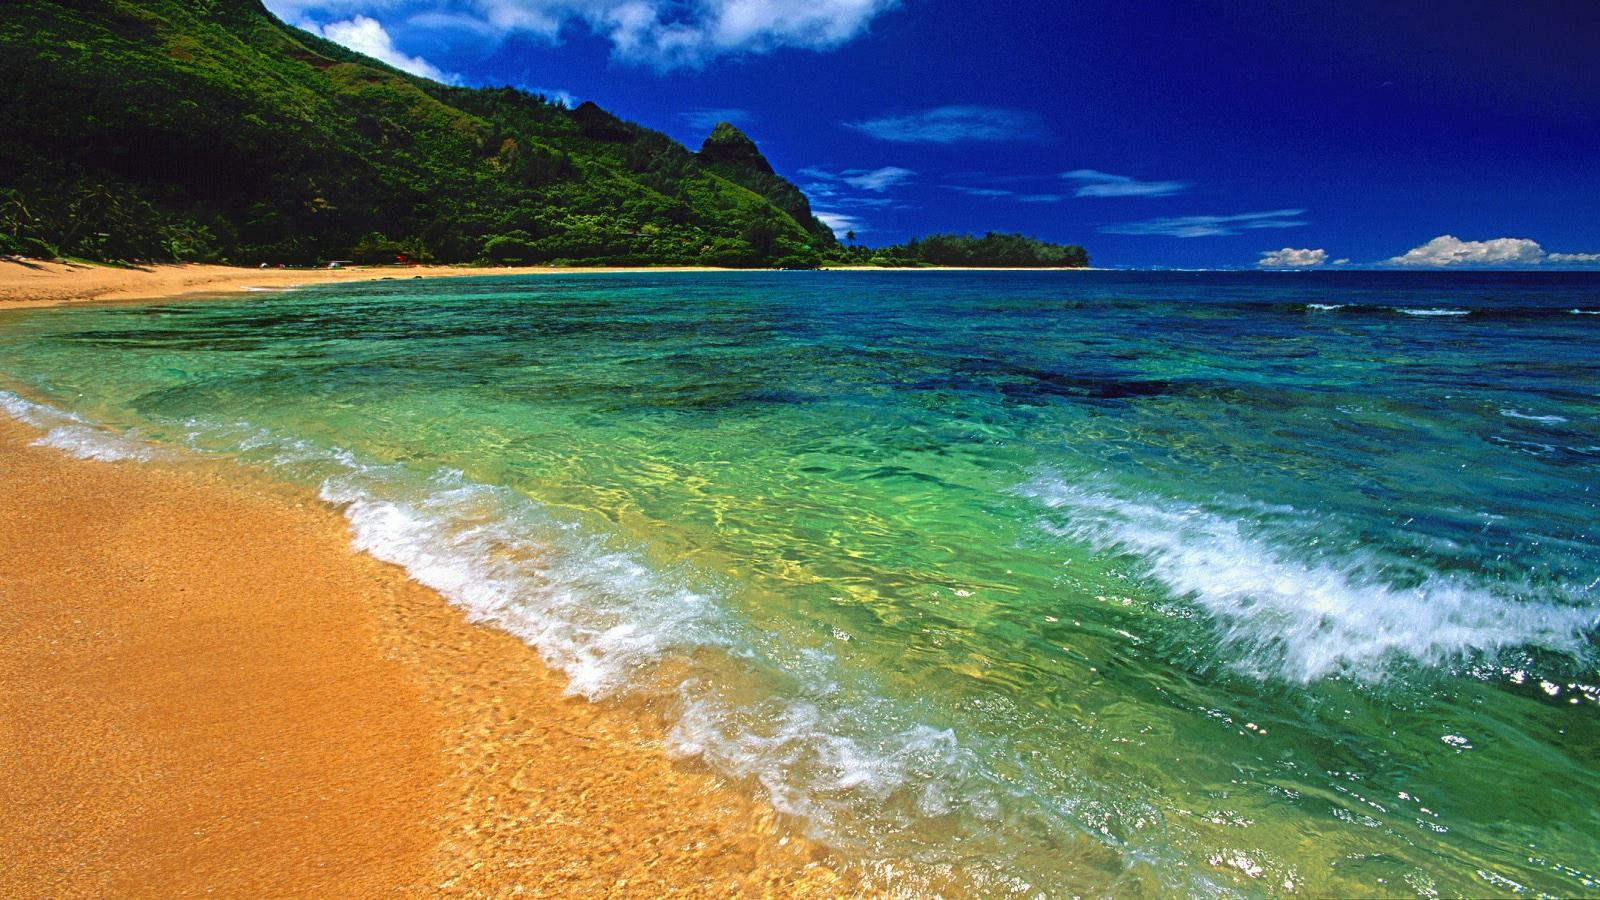 the best beach wallpaper for 2015 download hd quality 2015 beach 1600x900